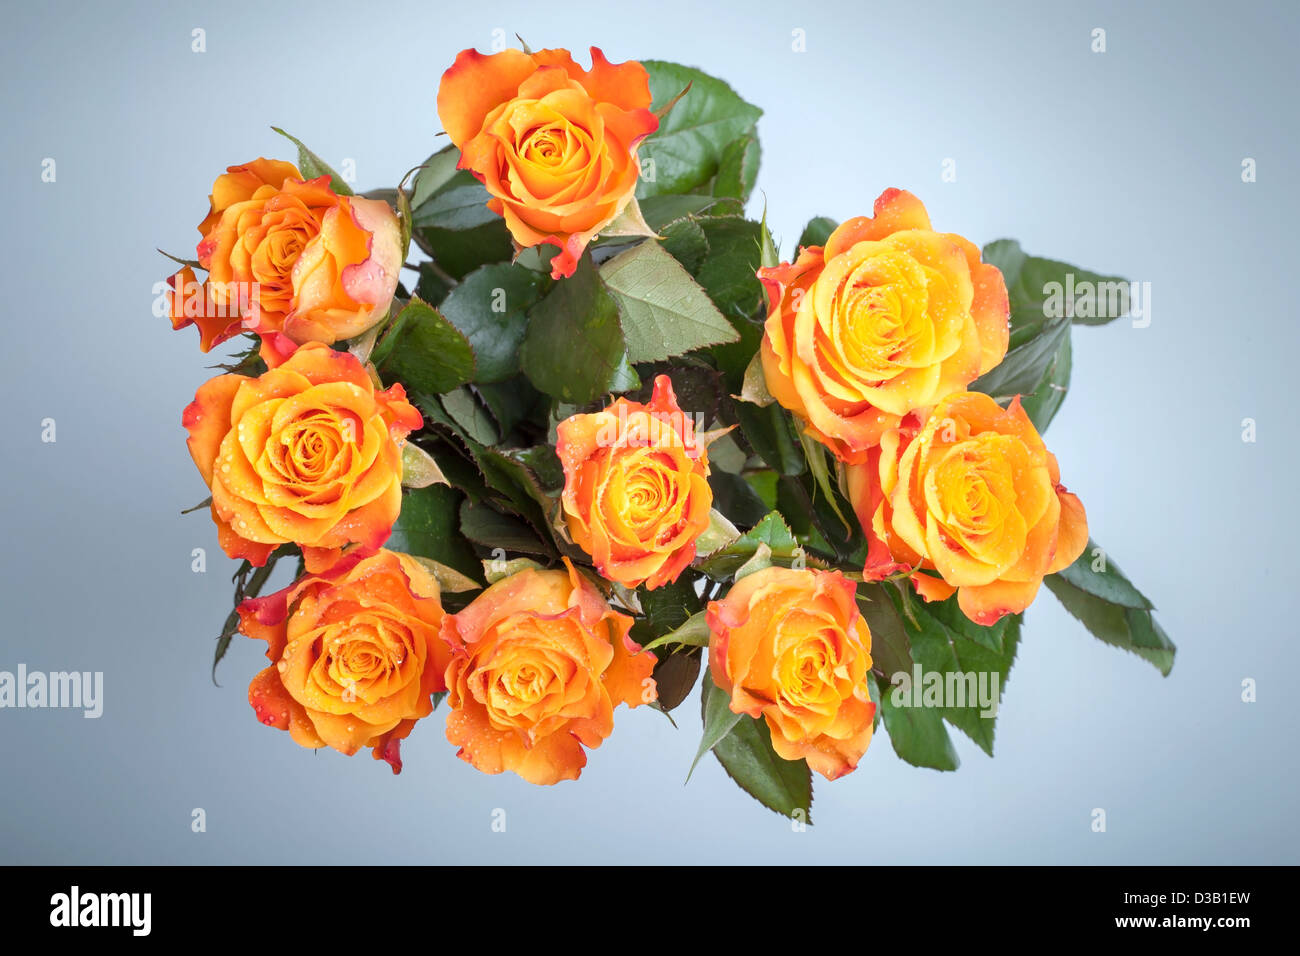 Bouquet of red and yellow roses flowers top view above light blue bouquet of red and yellow roses flowers top view above light blue background izmirmasajfo Image collections